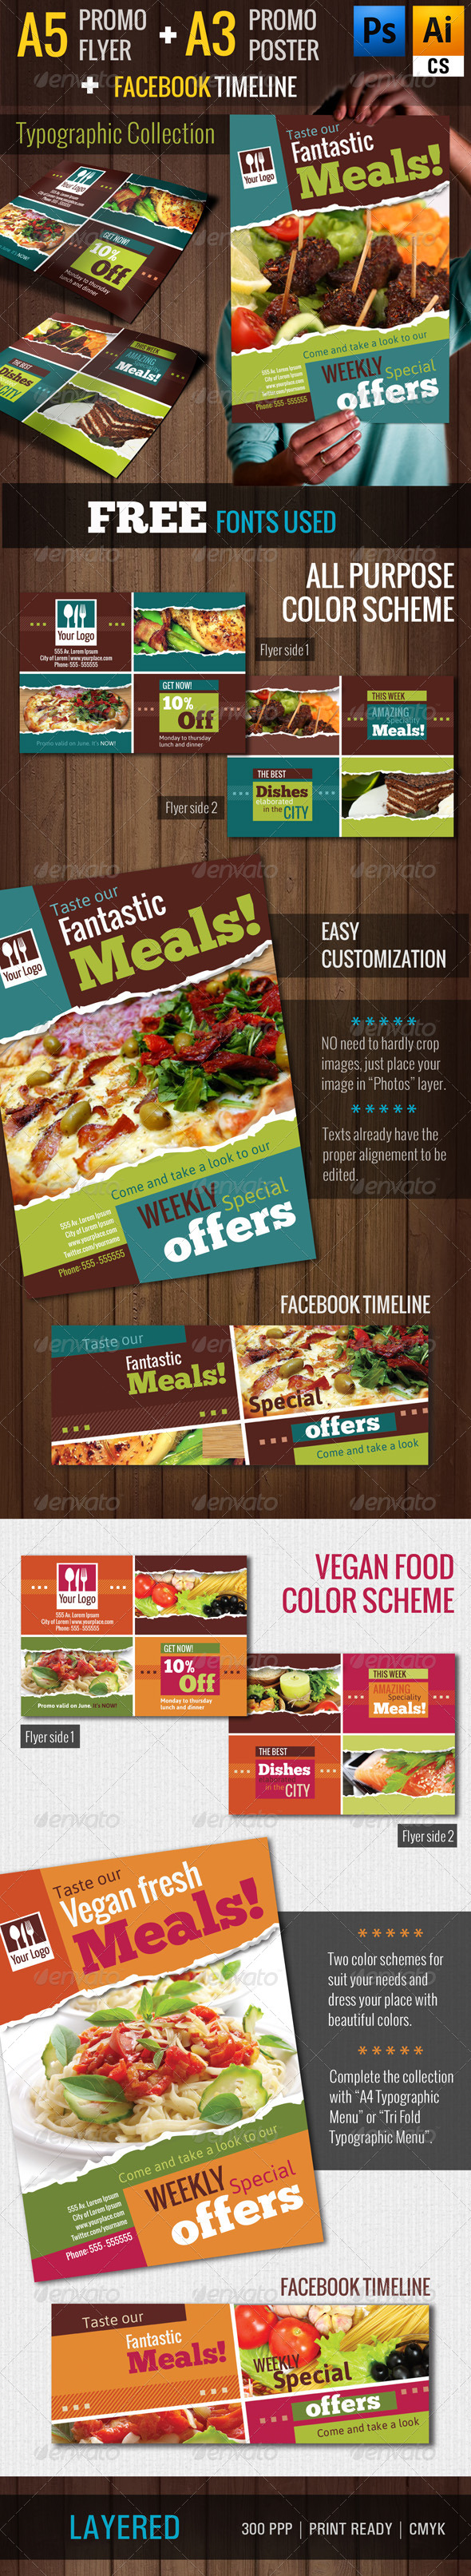 Typographic Restaurant Promo Poster/Flyer (A3/A5)